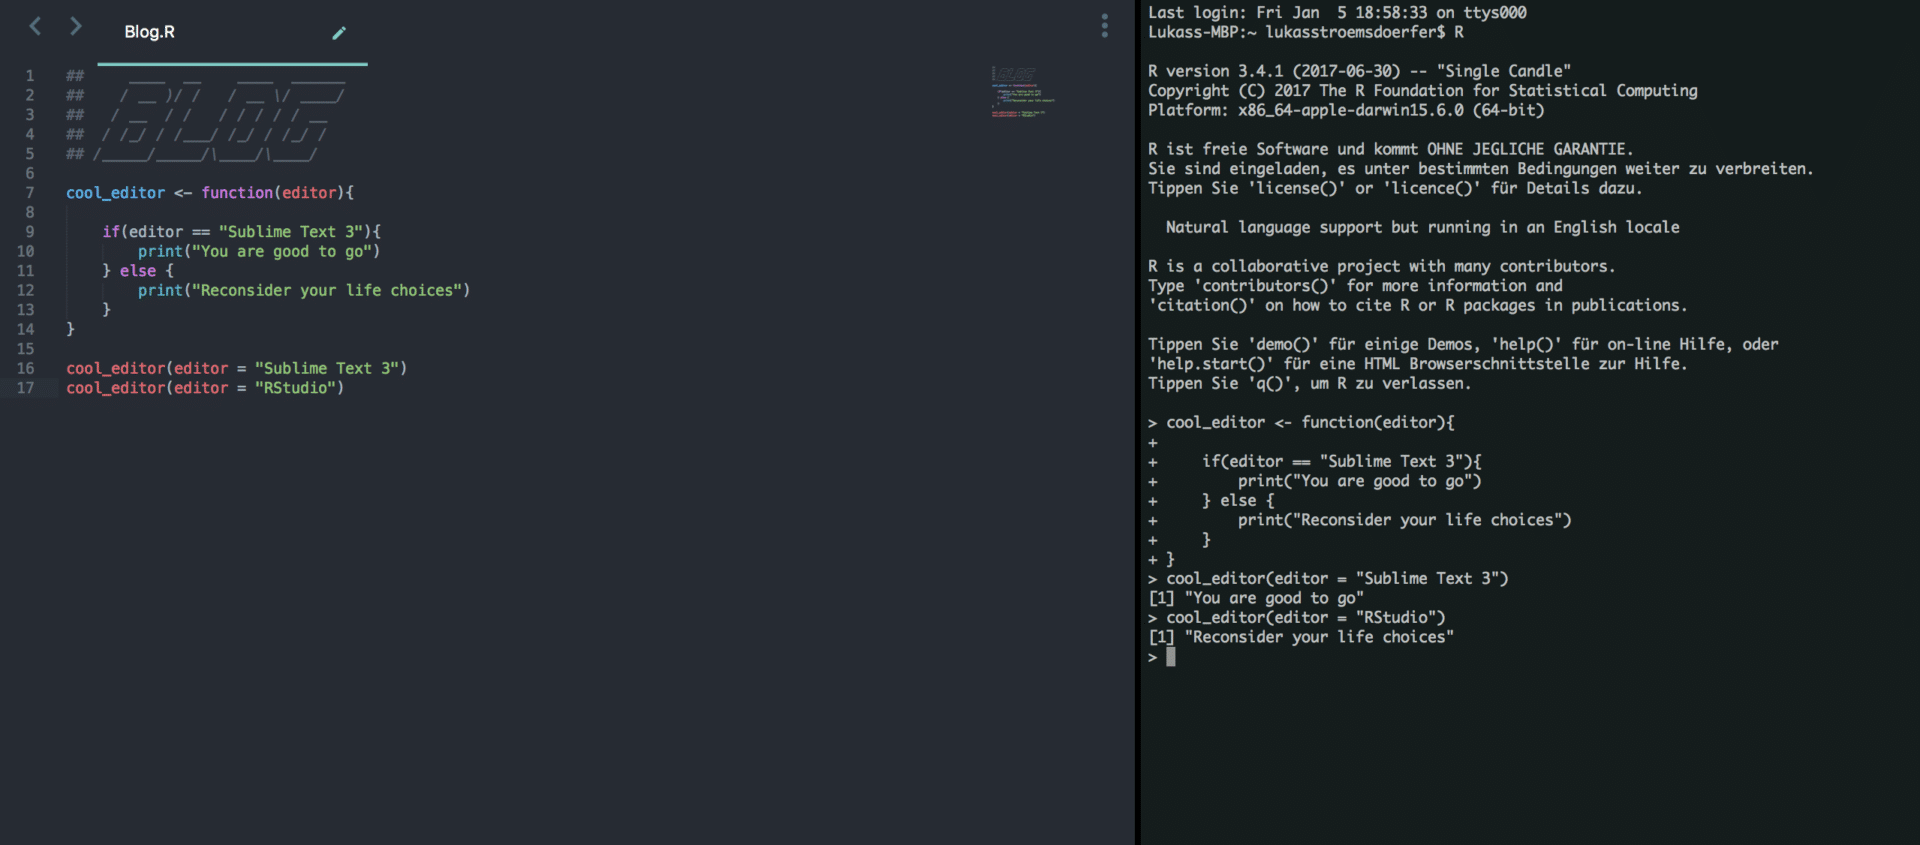 Compiling R Code in Sublime Text | STATWORX